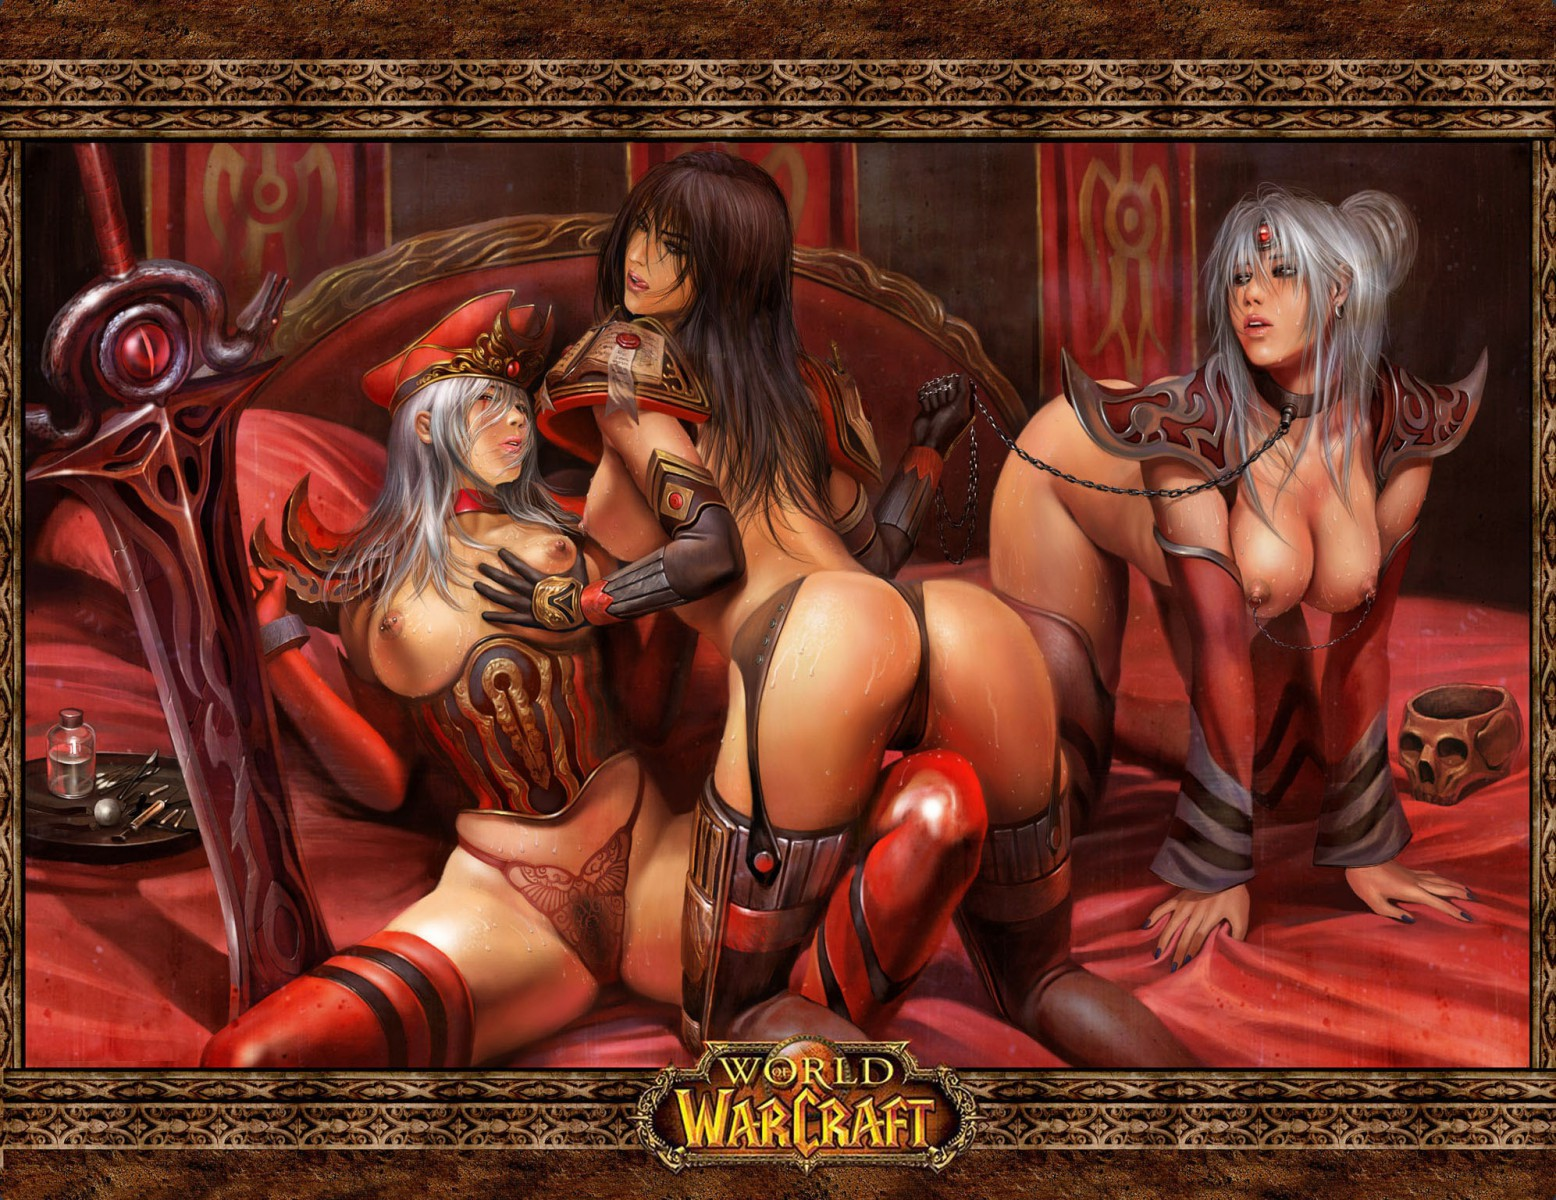 Cartoon world of warcraft lesbian sex sexy videos